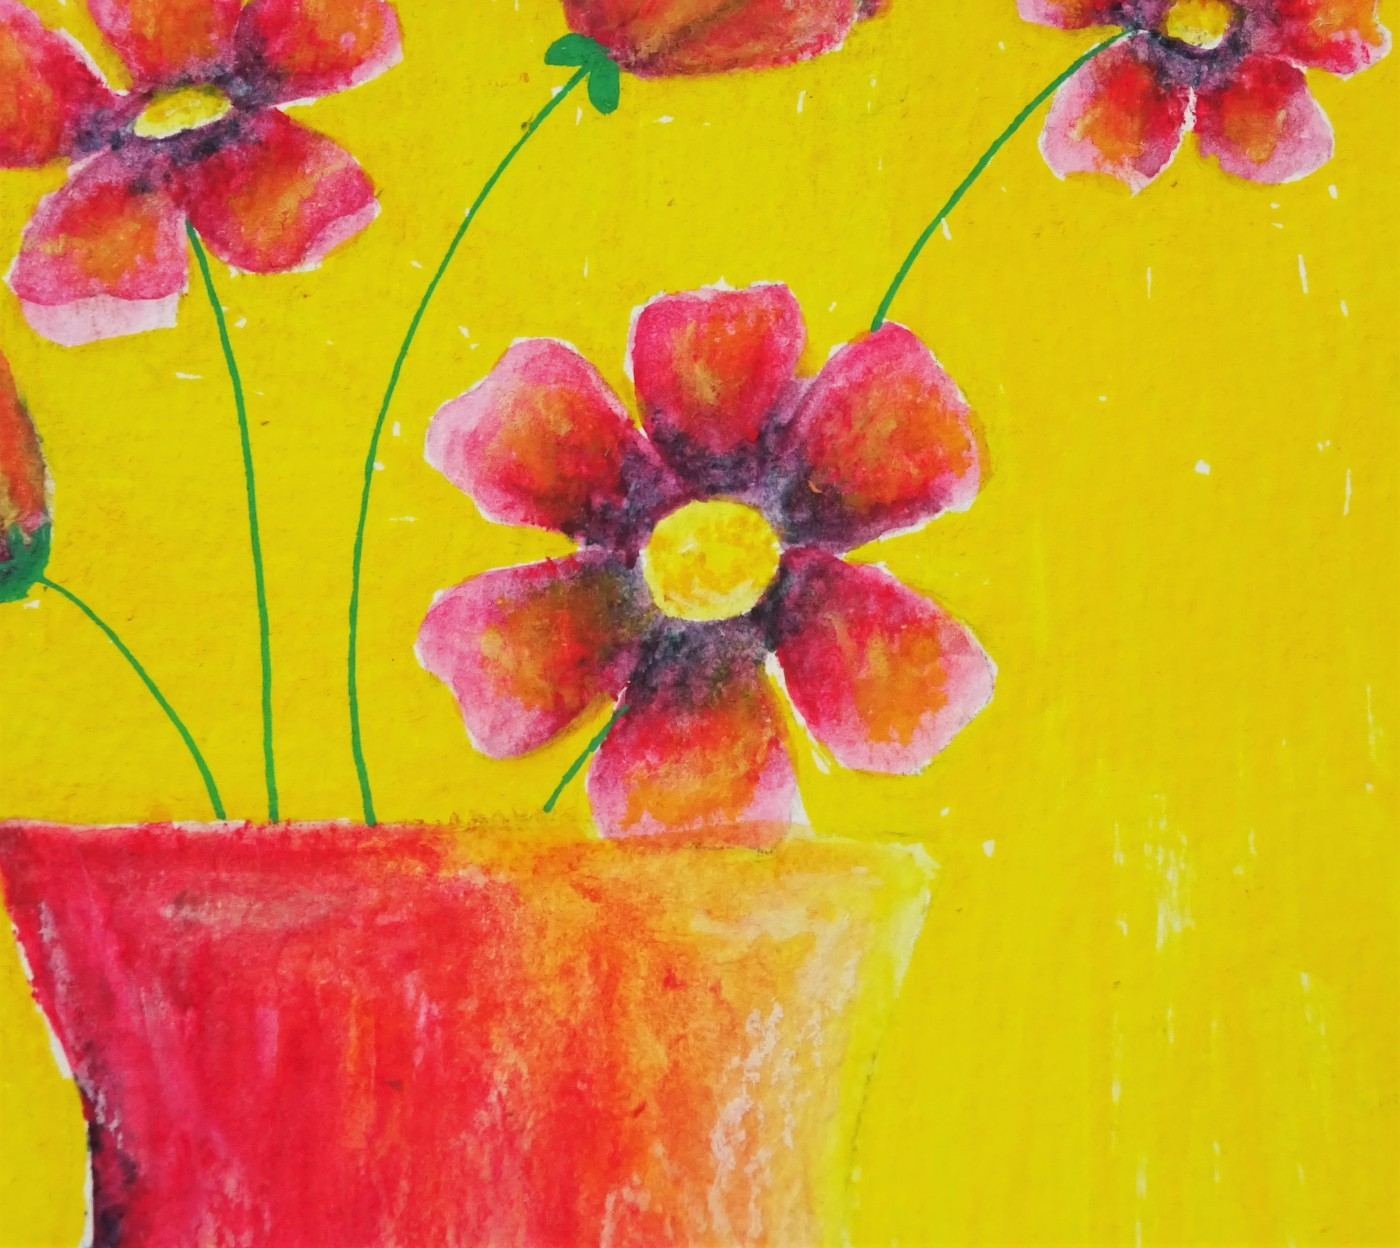 Prima art philosophy water soluble oils pastel flower illustration / how to use water soluble oil pastels